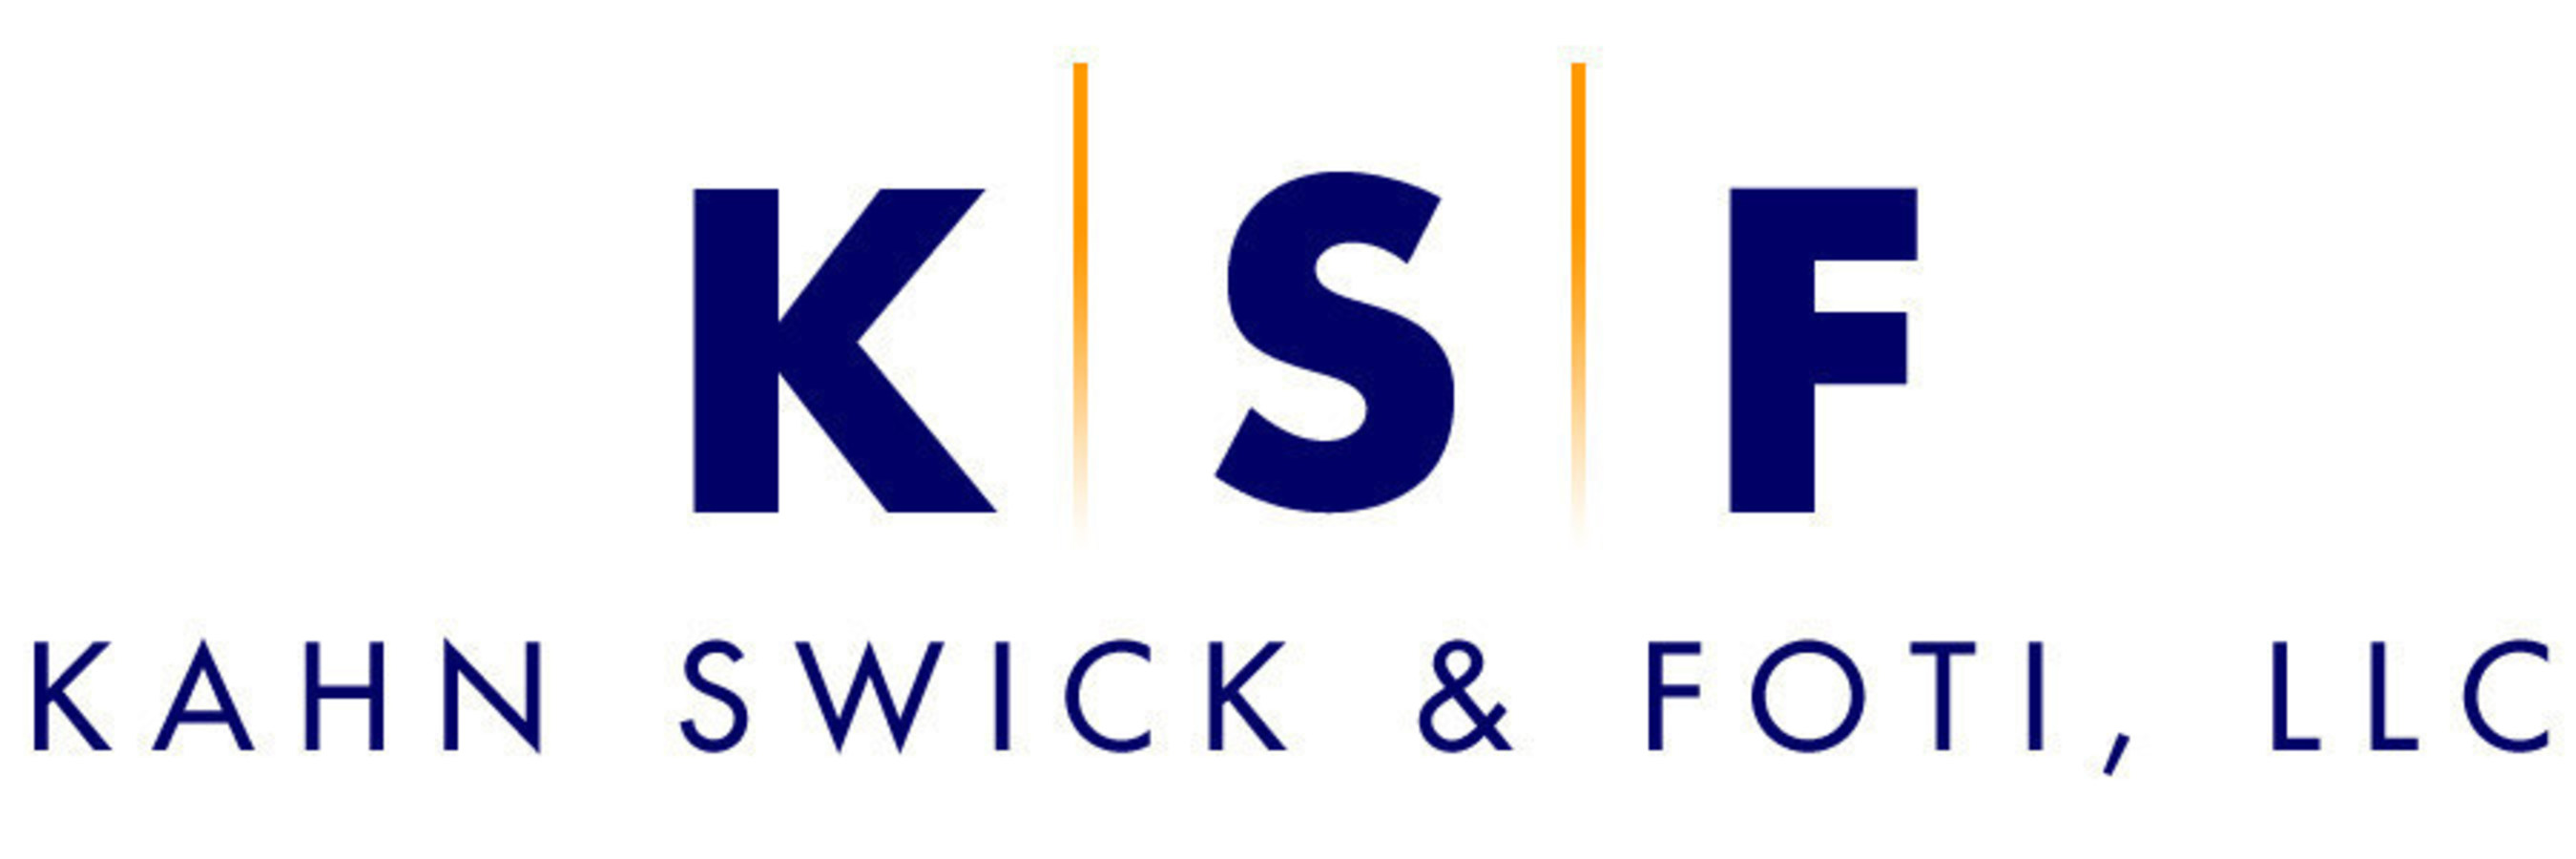 "Kahn Swick & Foti, LLC (""KSF"") - - not all law firms are created equal. Visit www.ksfcounsel.com to learn more about KSF."